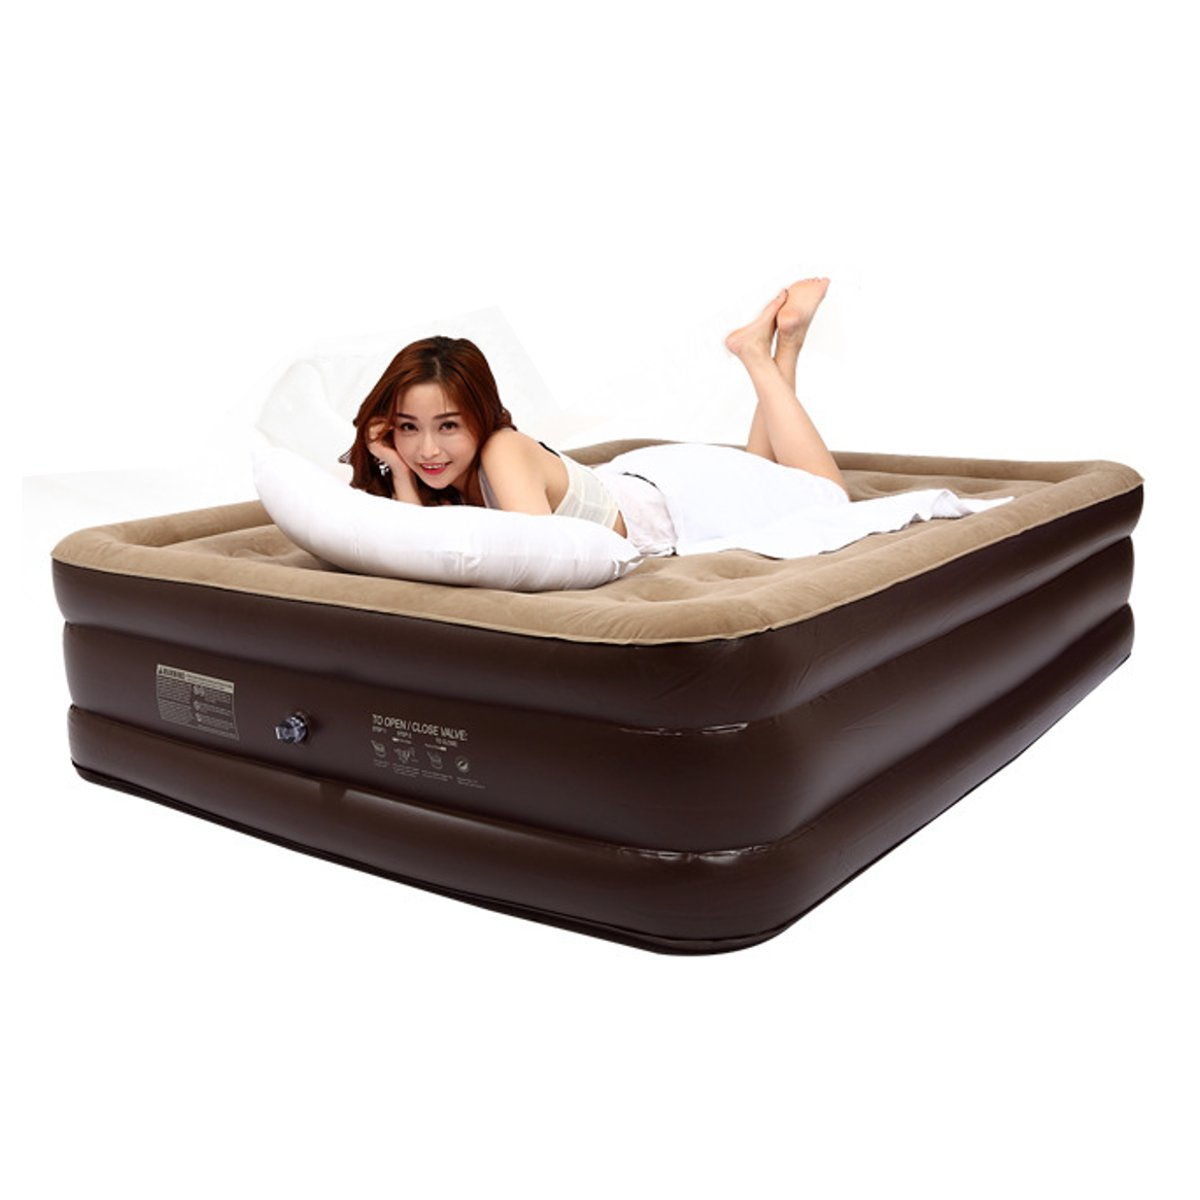 Hot Sale Comfort Double Single Luxury Air Bed Inflatable Mattress